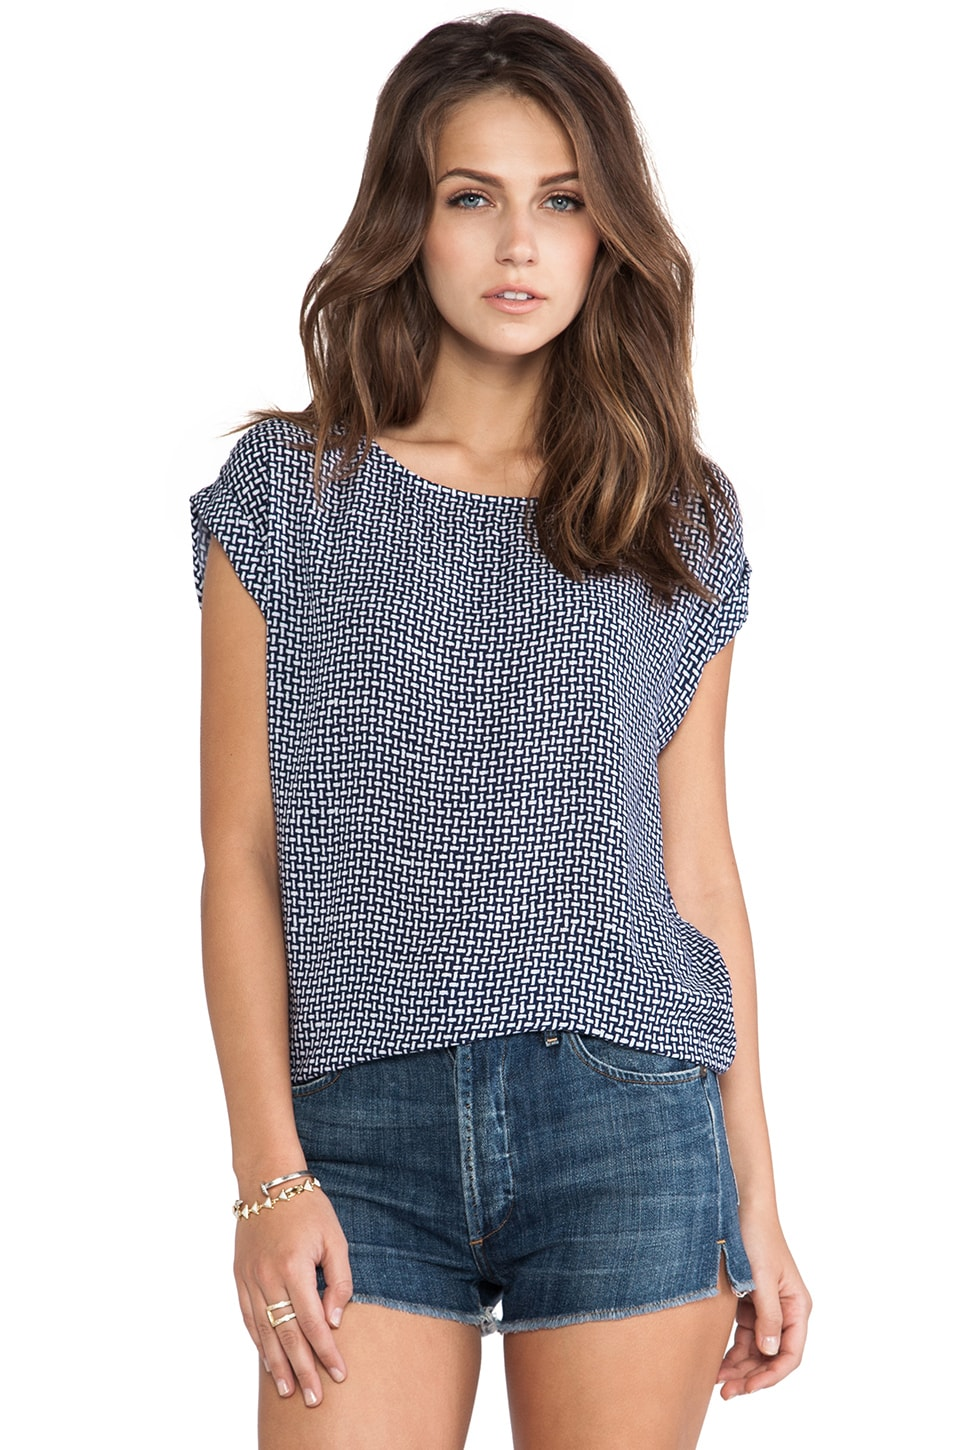 Splendid Basket Weave Top in Navy